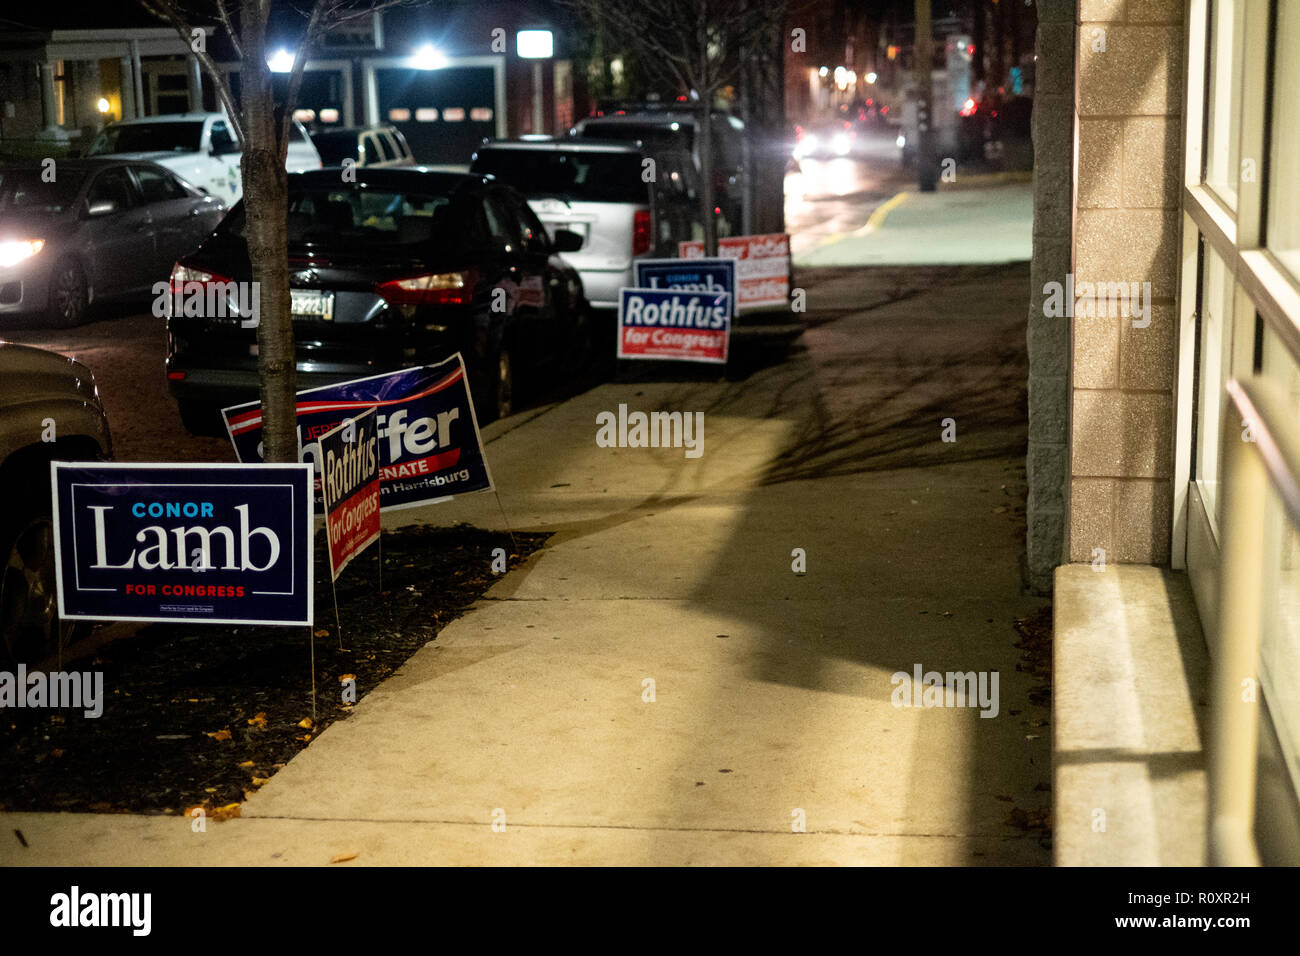 Yard signs for elections are seen during the midterm elections in Pittsburgh, PA in the aftermath of the Tree of Life shootings. - Stock Image